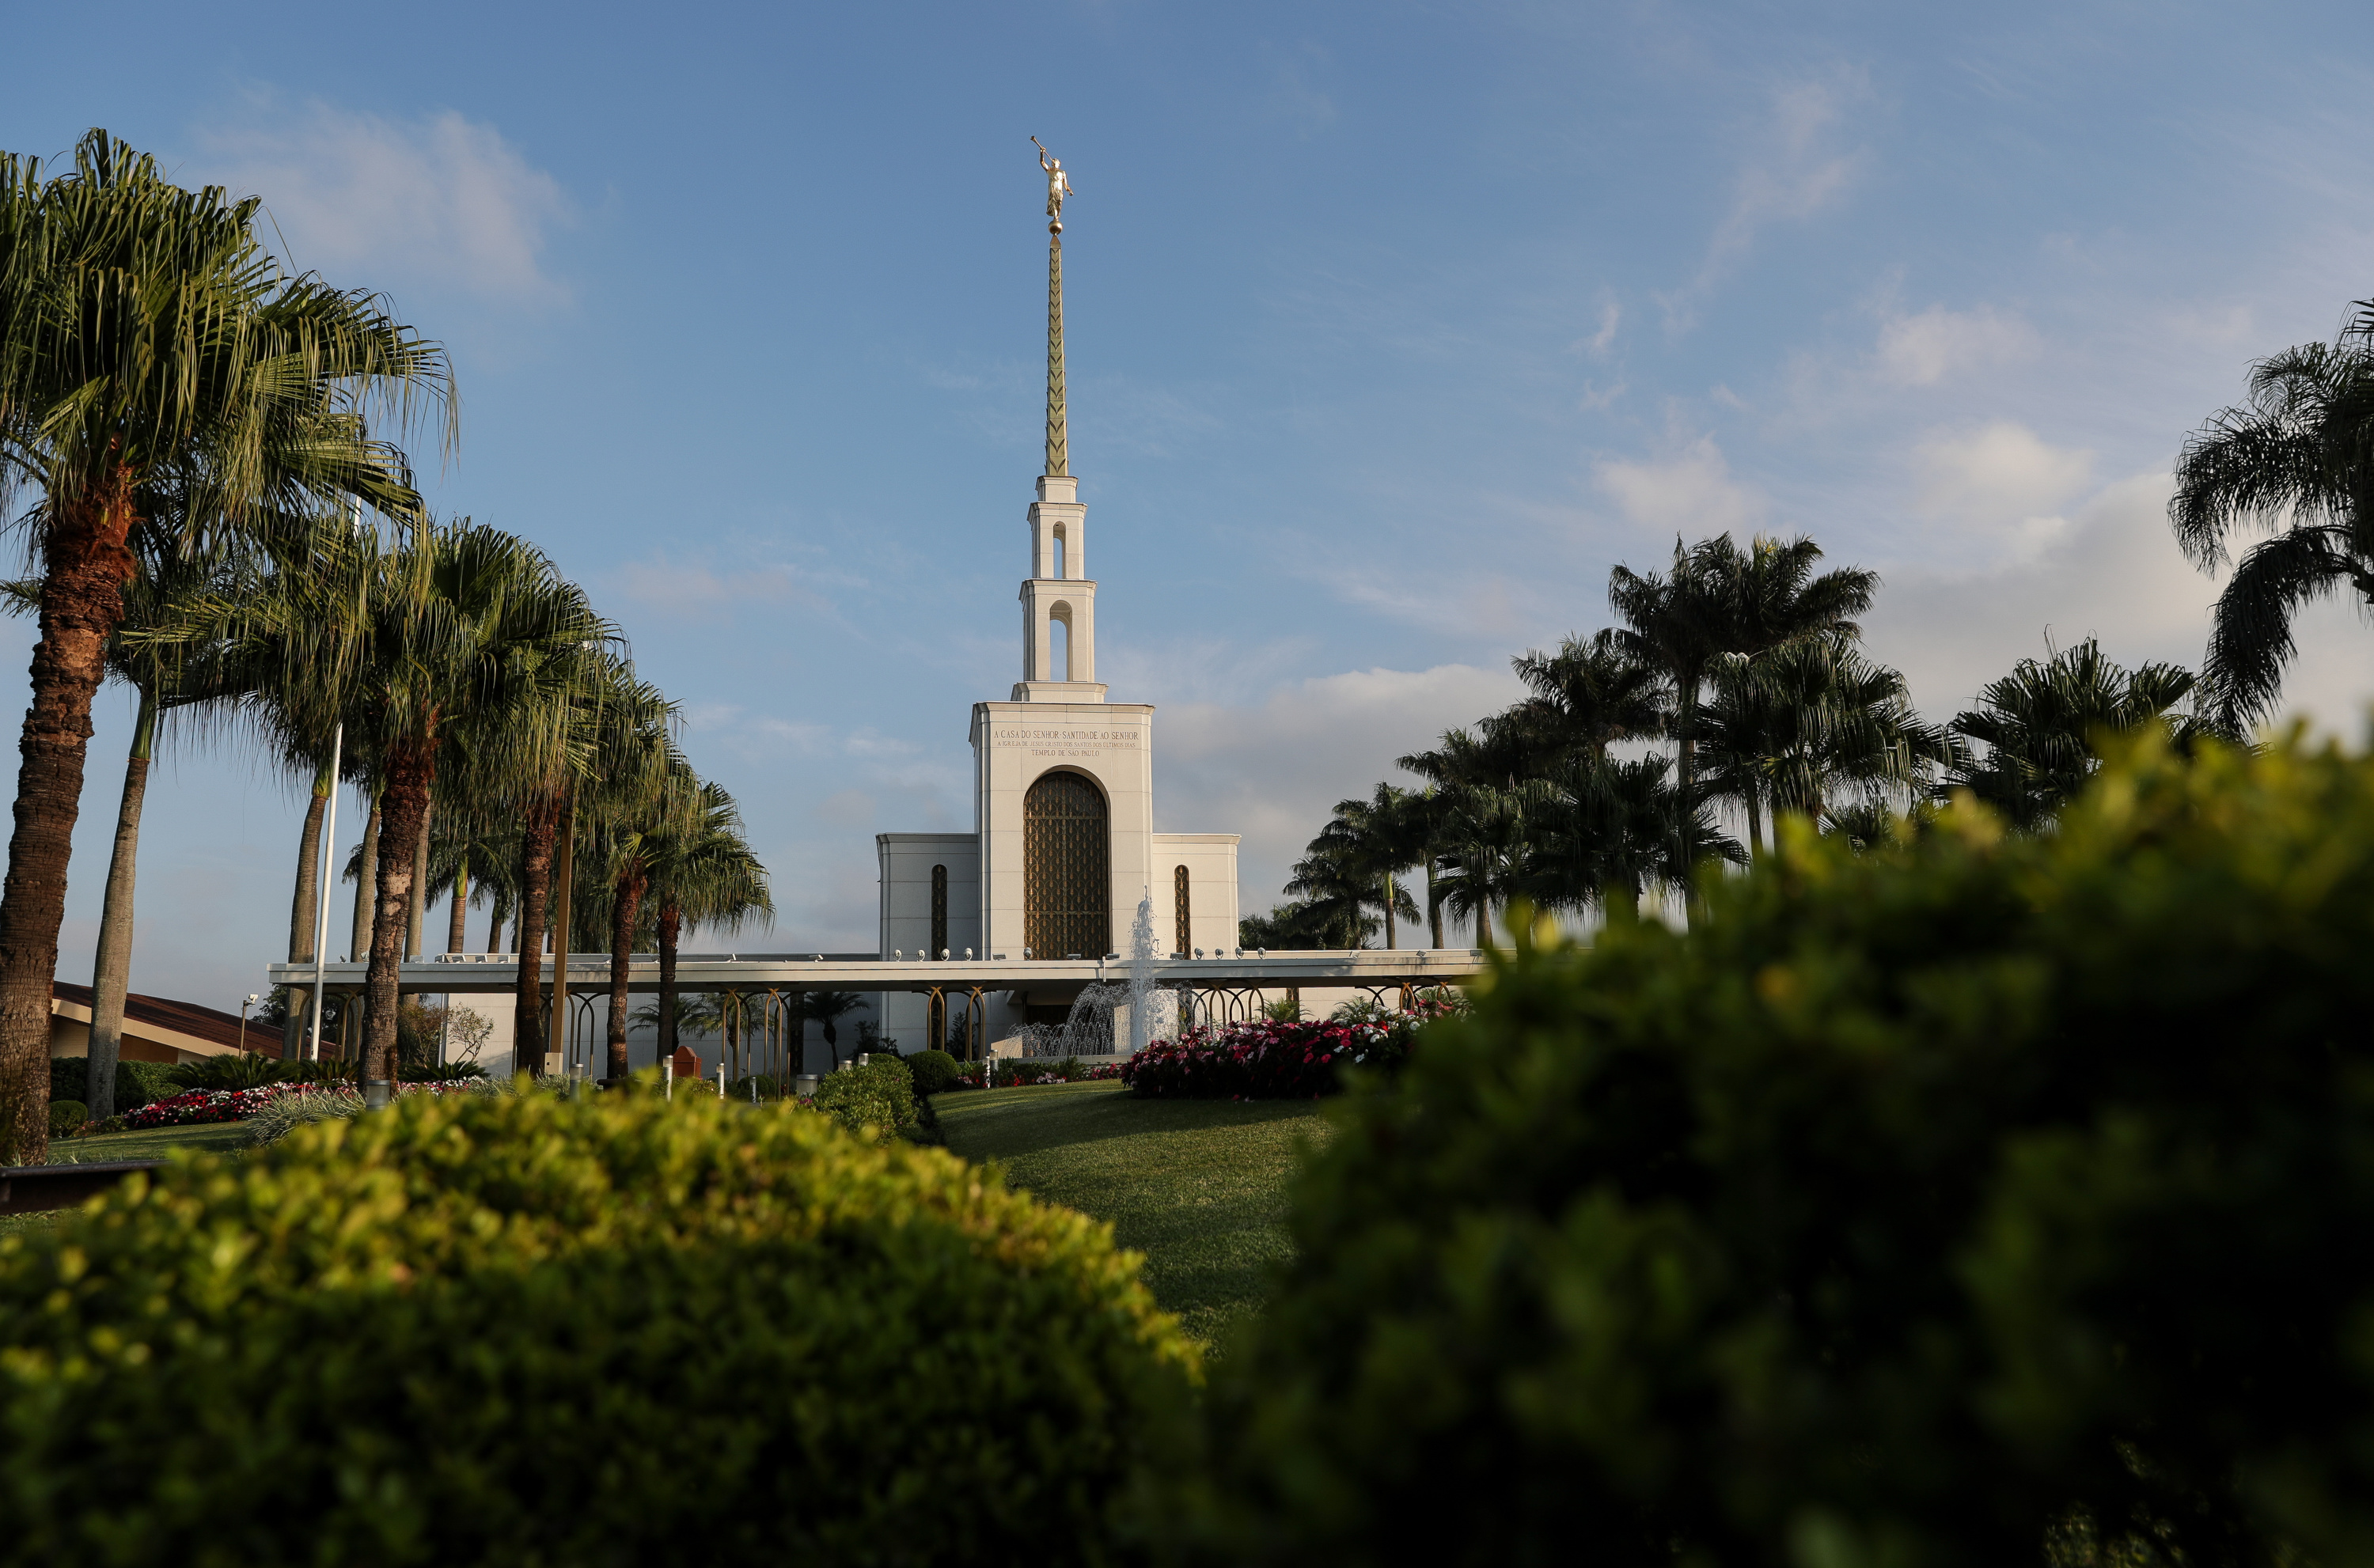 The LDS Church's São Paulo Temple in São Paulo, Brazil is seen early in the morning on Thursday, May 24, 2018.